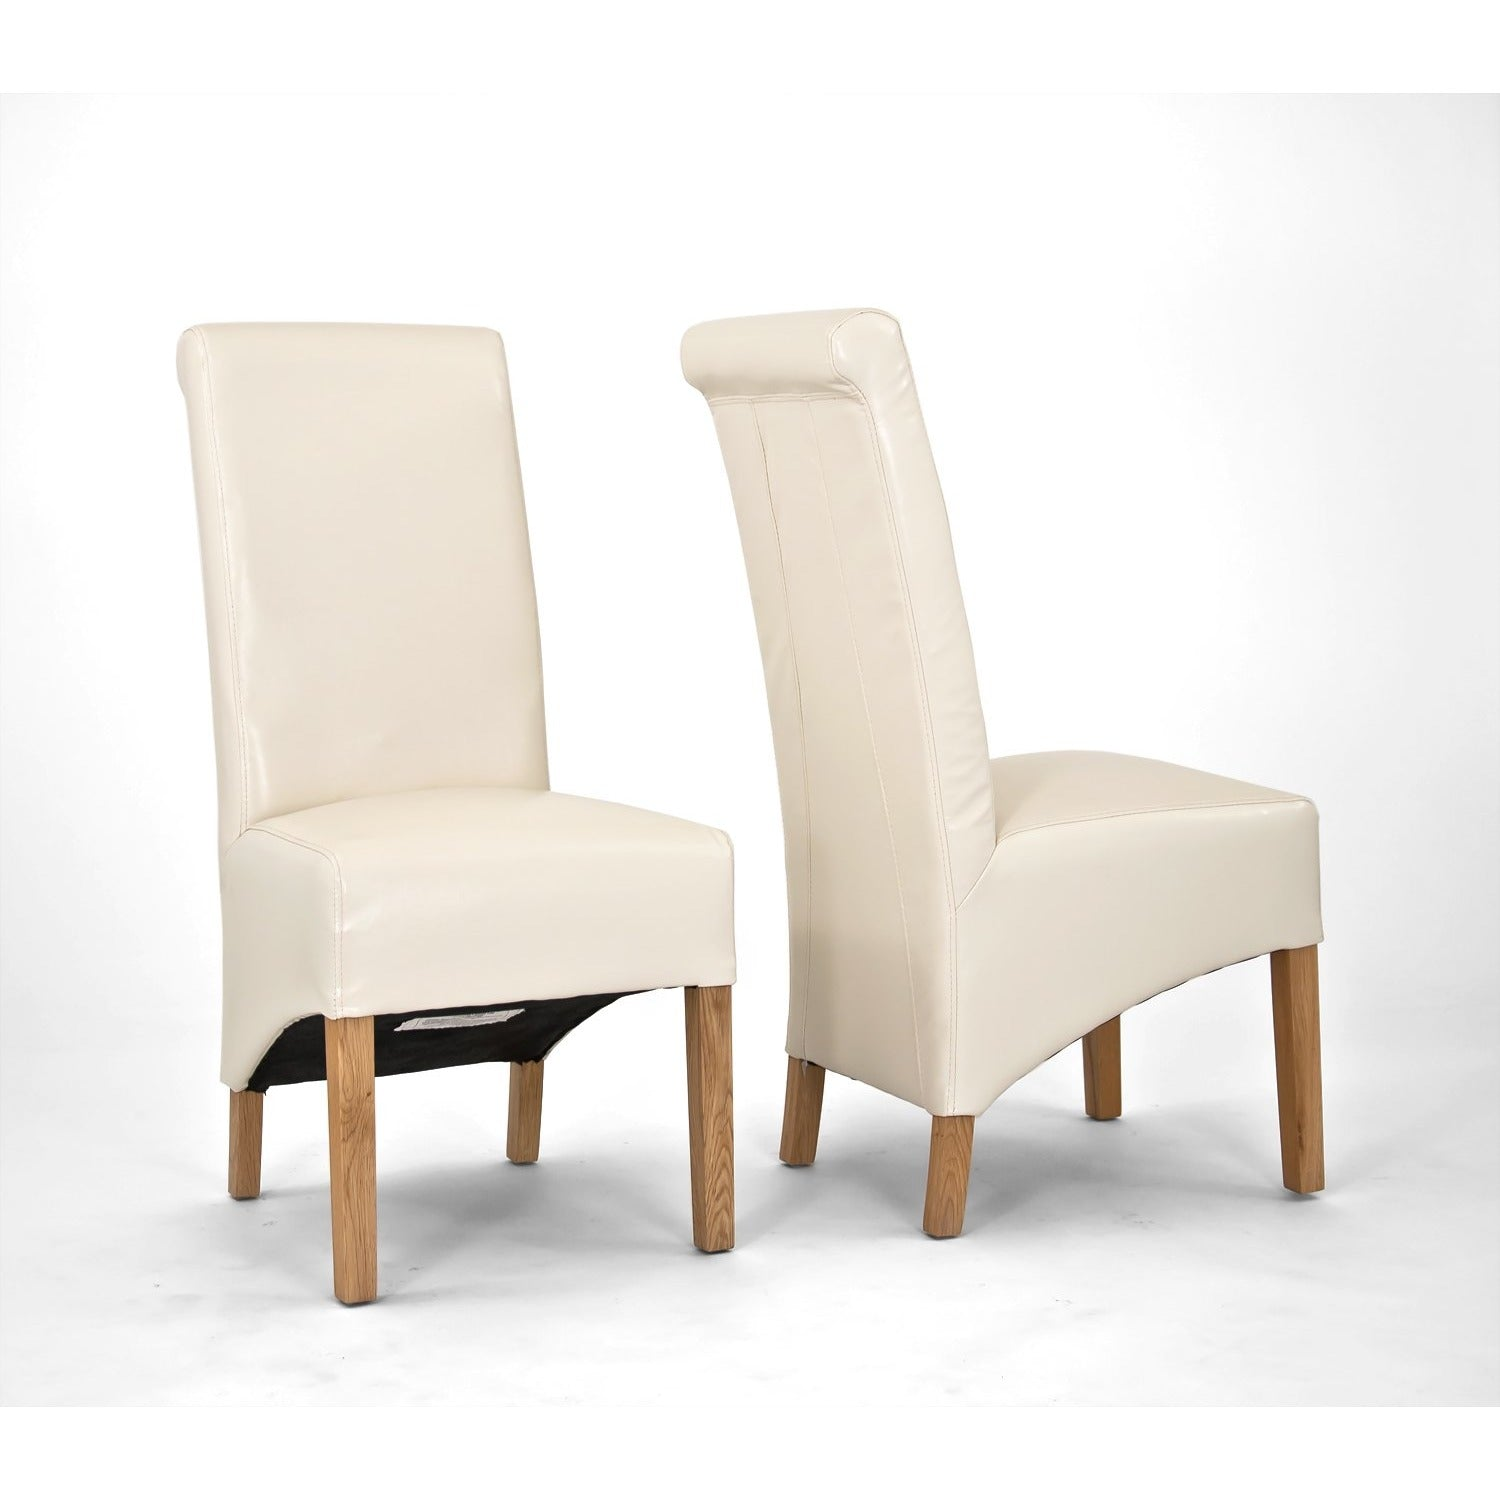 Sherwood Oak Rolltop PU / Bicast Leather Chair - Cream - PAIR - Perfectly Home Interiors